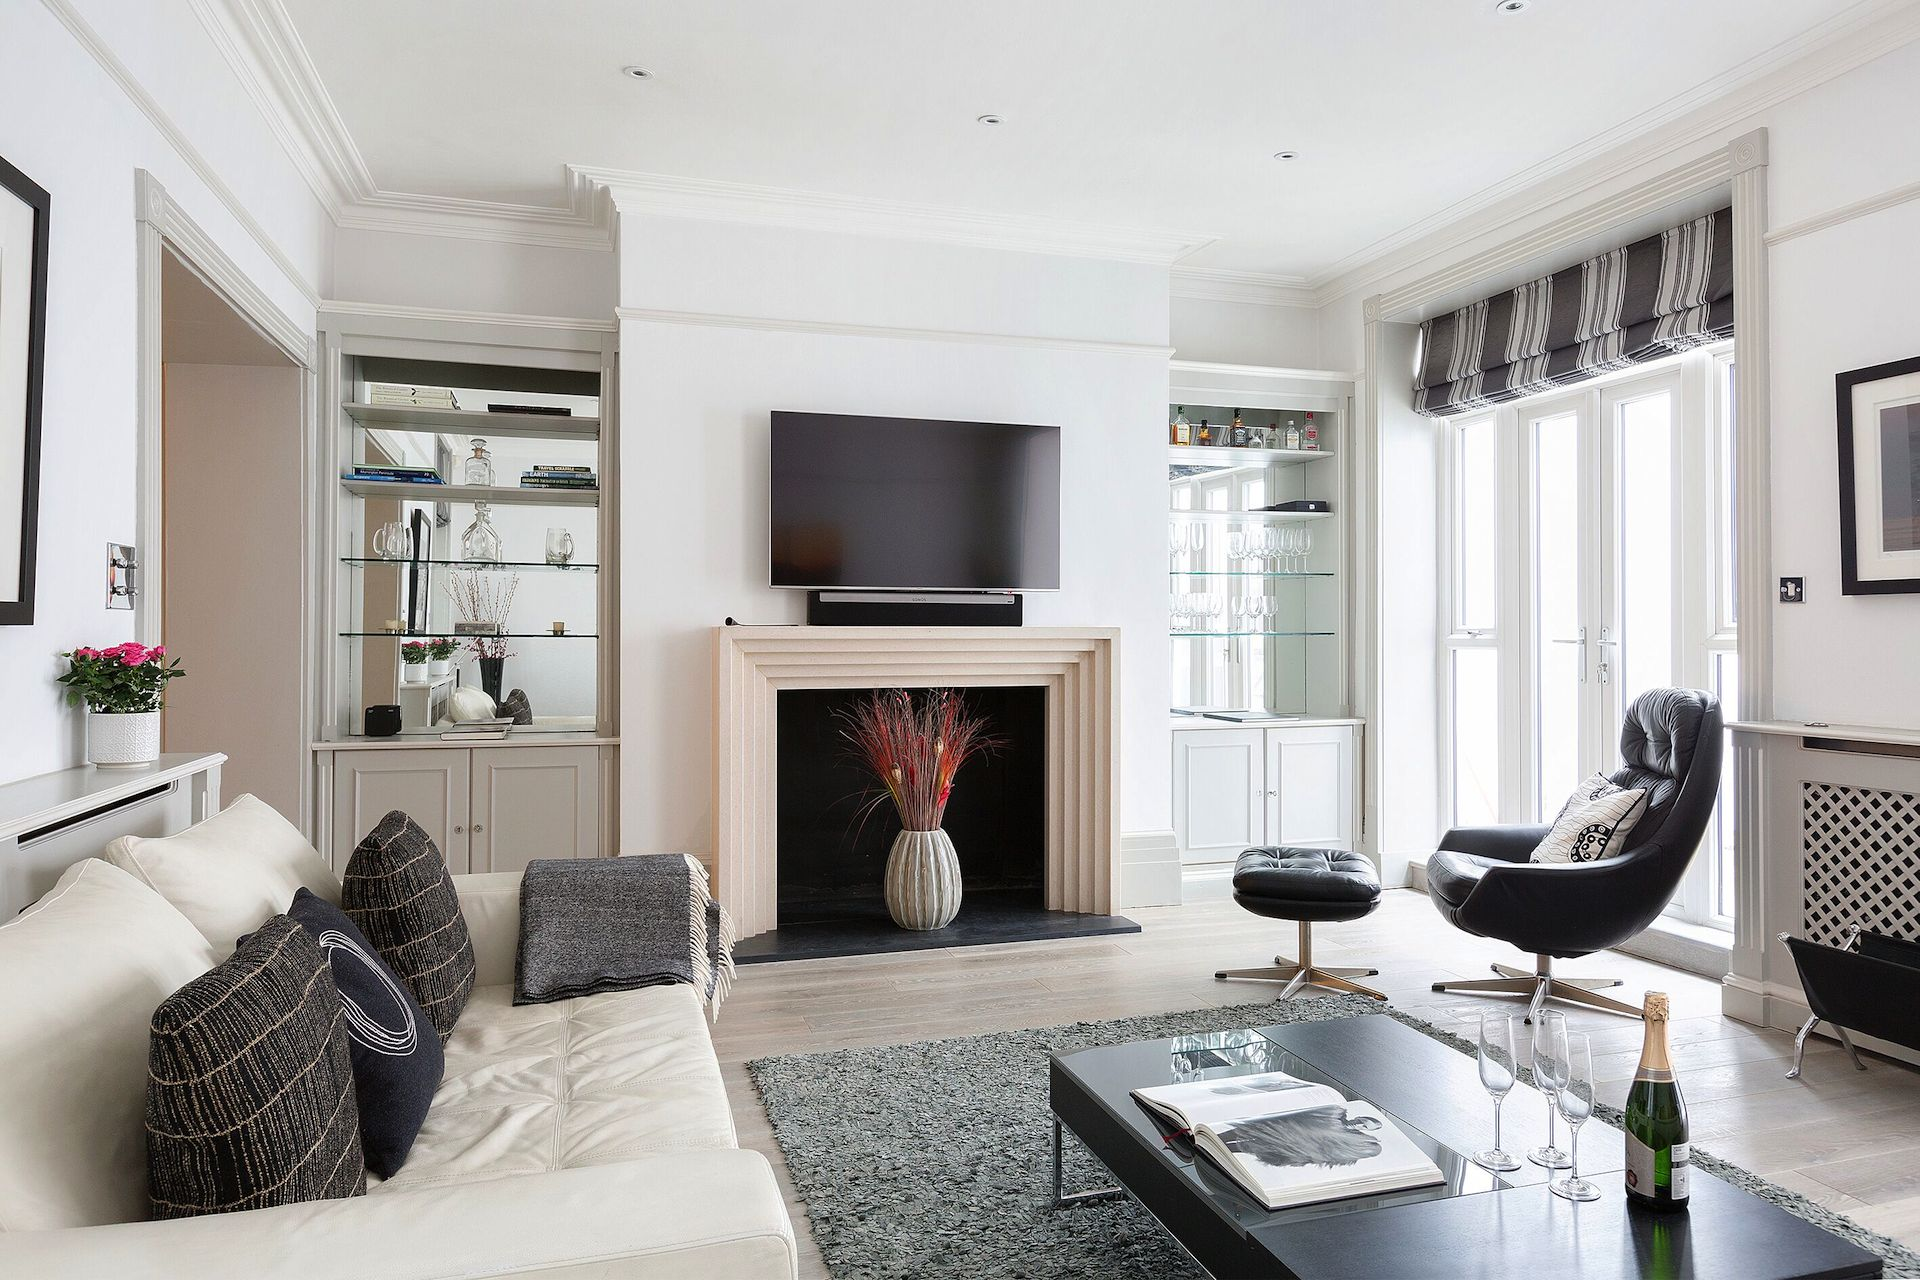 High ceilings in the Coleherne vacation rental offered by London Perfect